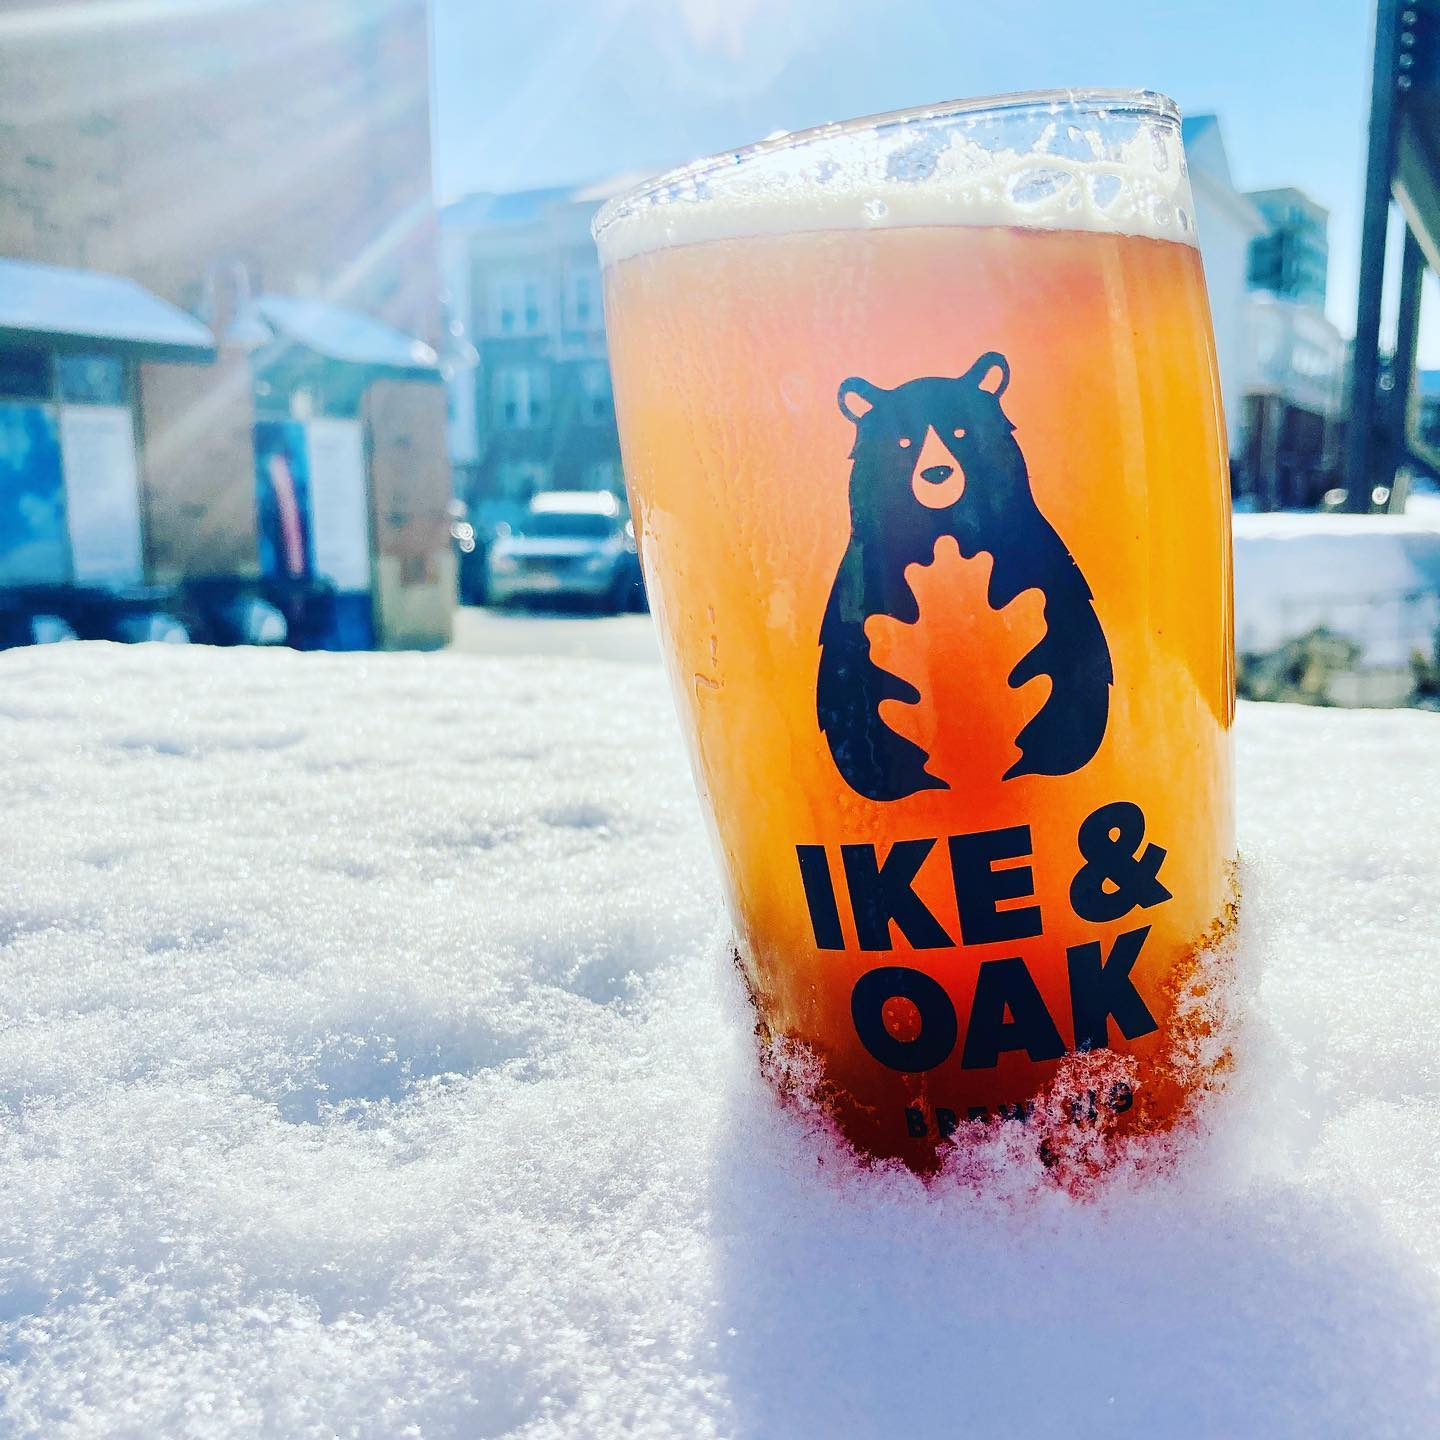 Glass of beer in snow at Ike & Oak Brewing